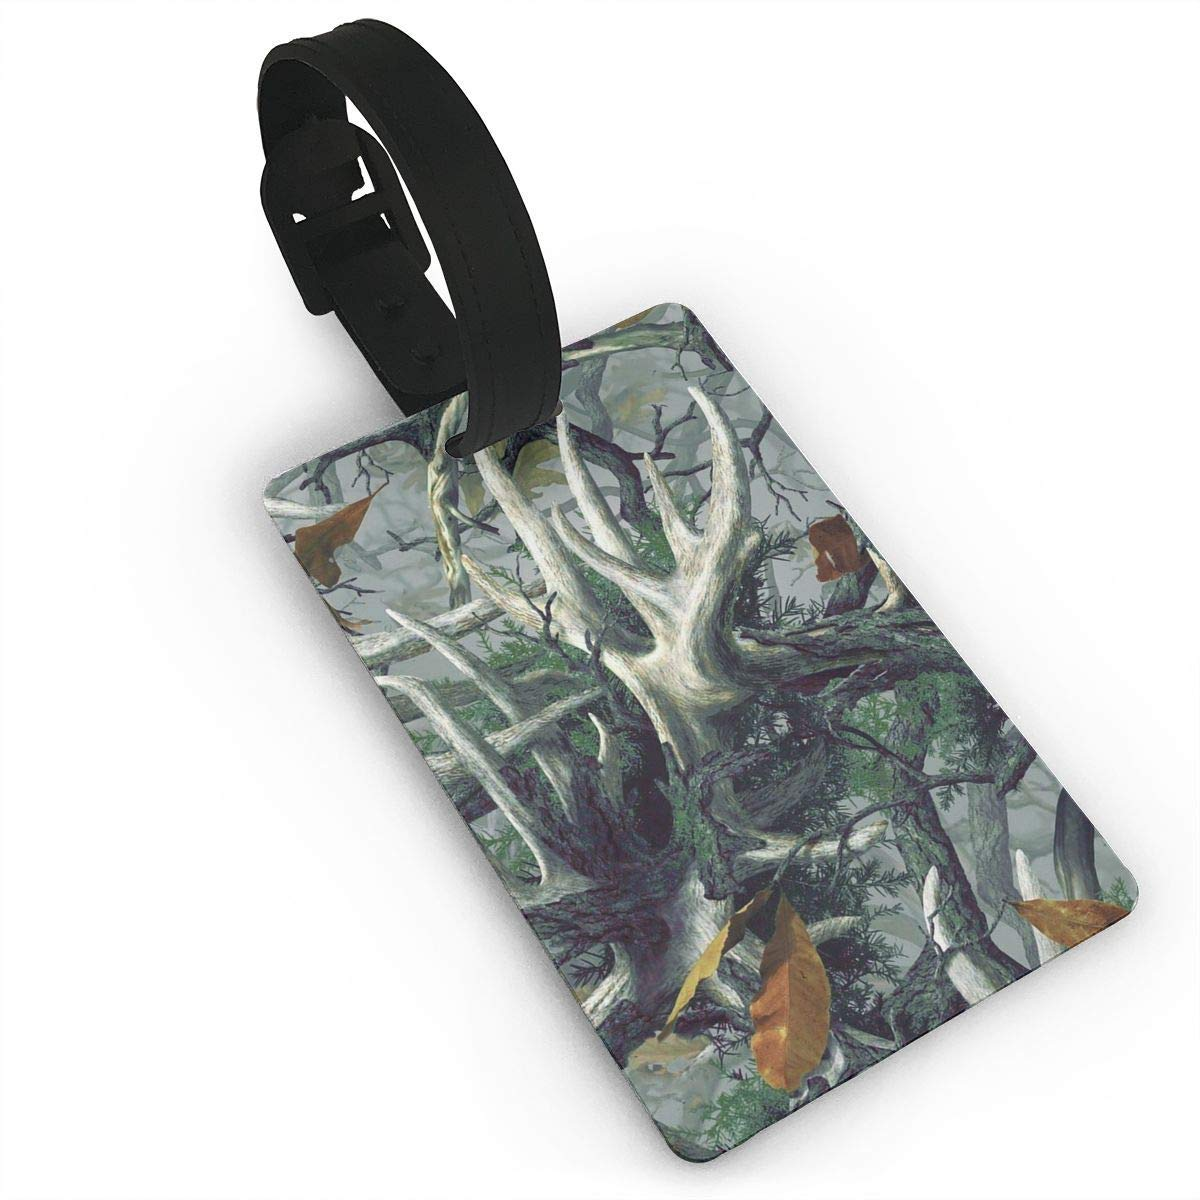 f4e4811d7249 Get Quotations · XINLLPO Realistic Deer Skull Camouflage PVC Luggage Tags  Travel Suitcase Labels Business Card Holder